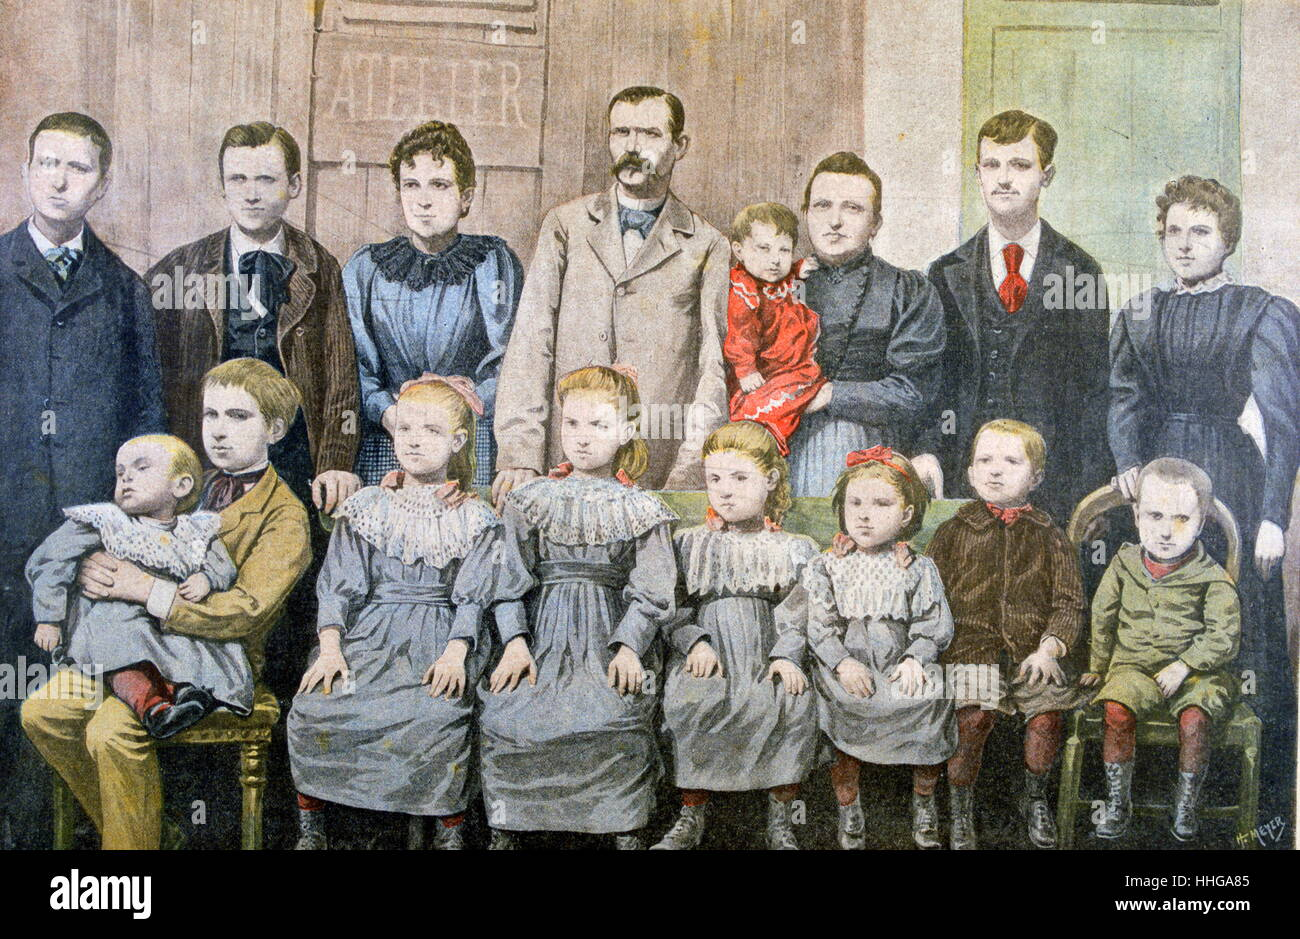 Illustration of a French family with 14 children 1899 - Stock Image